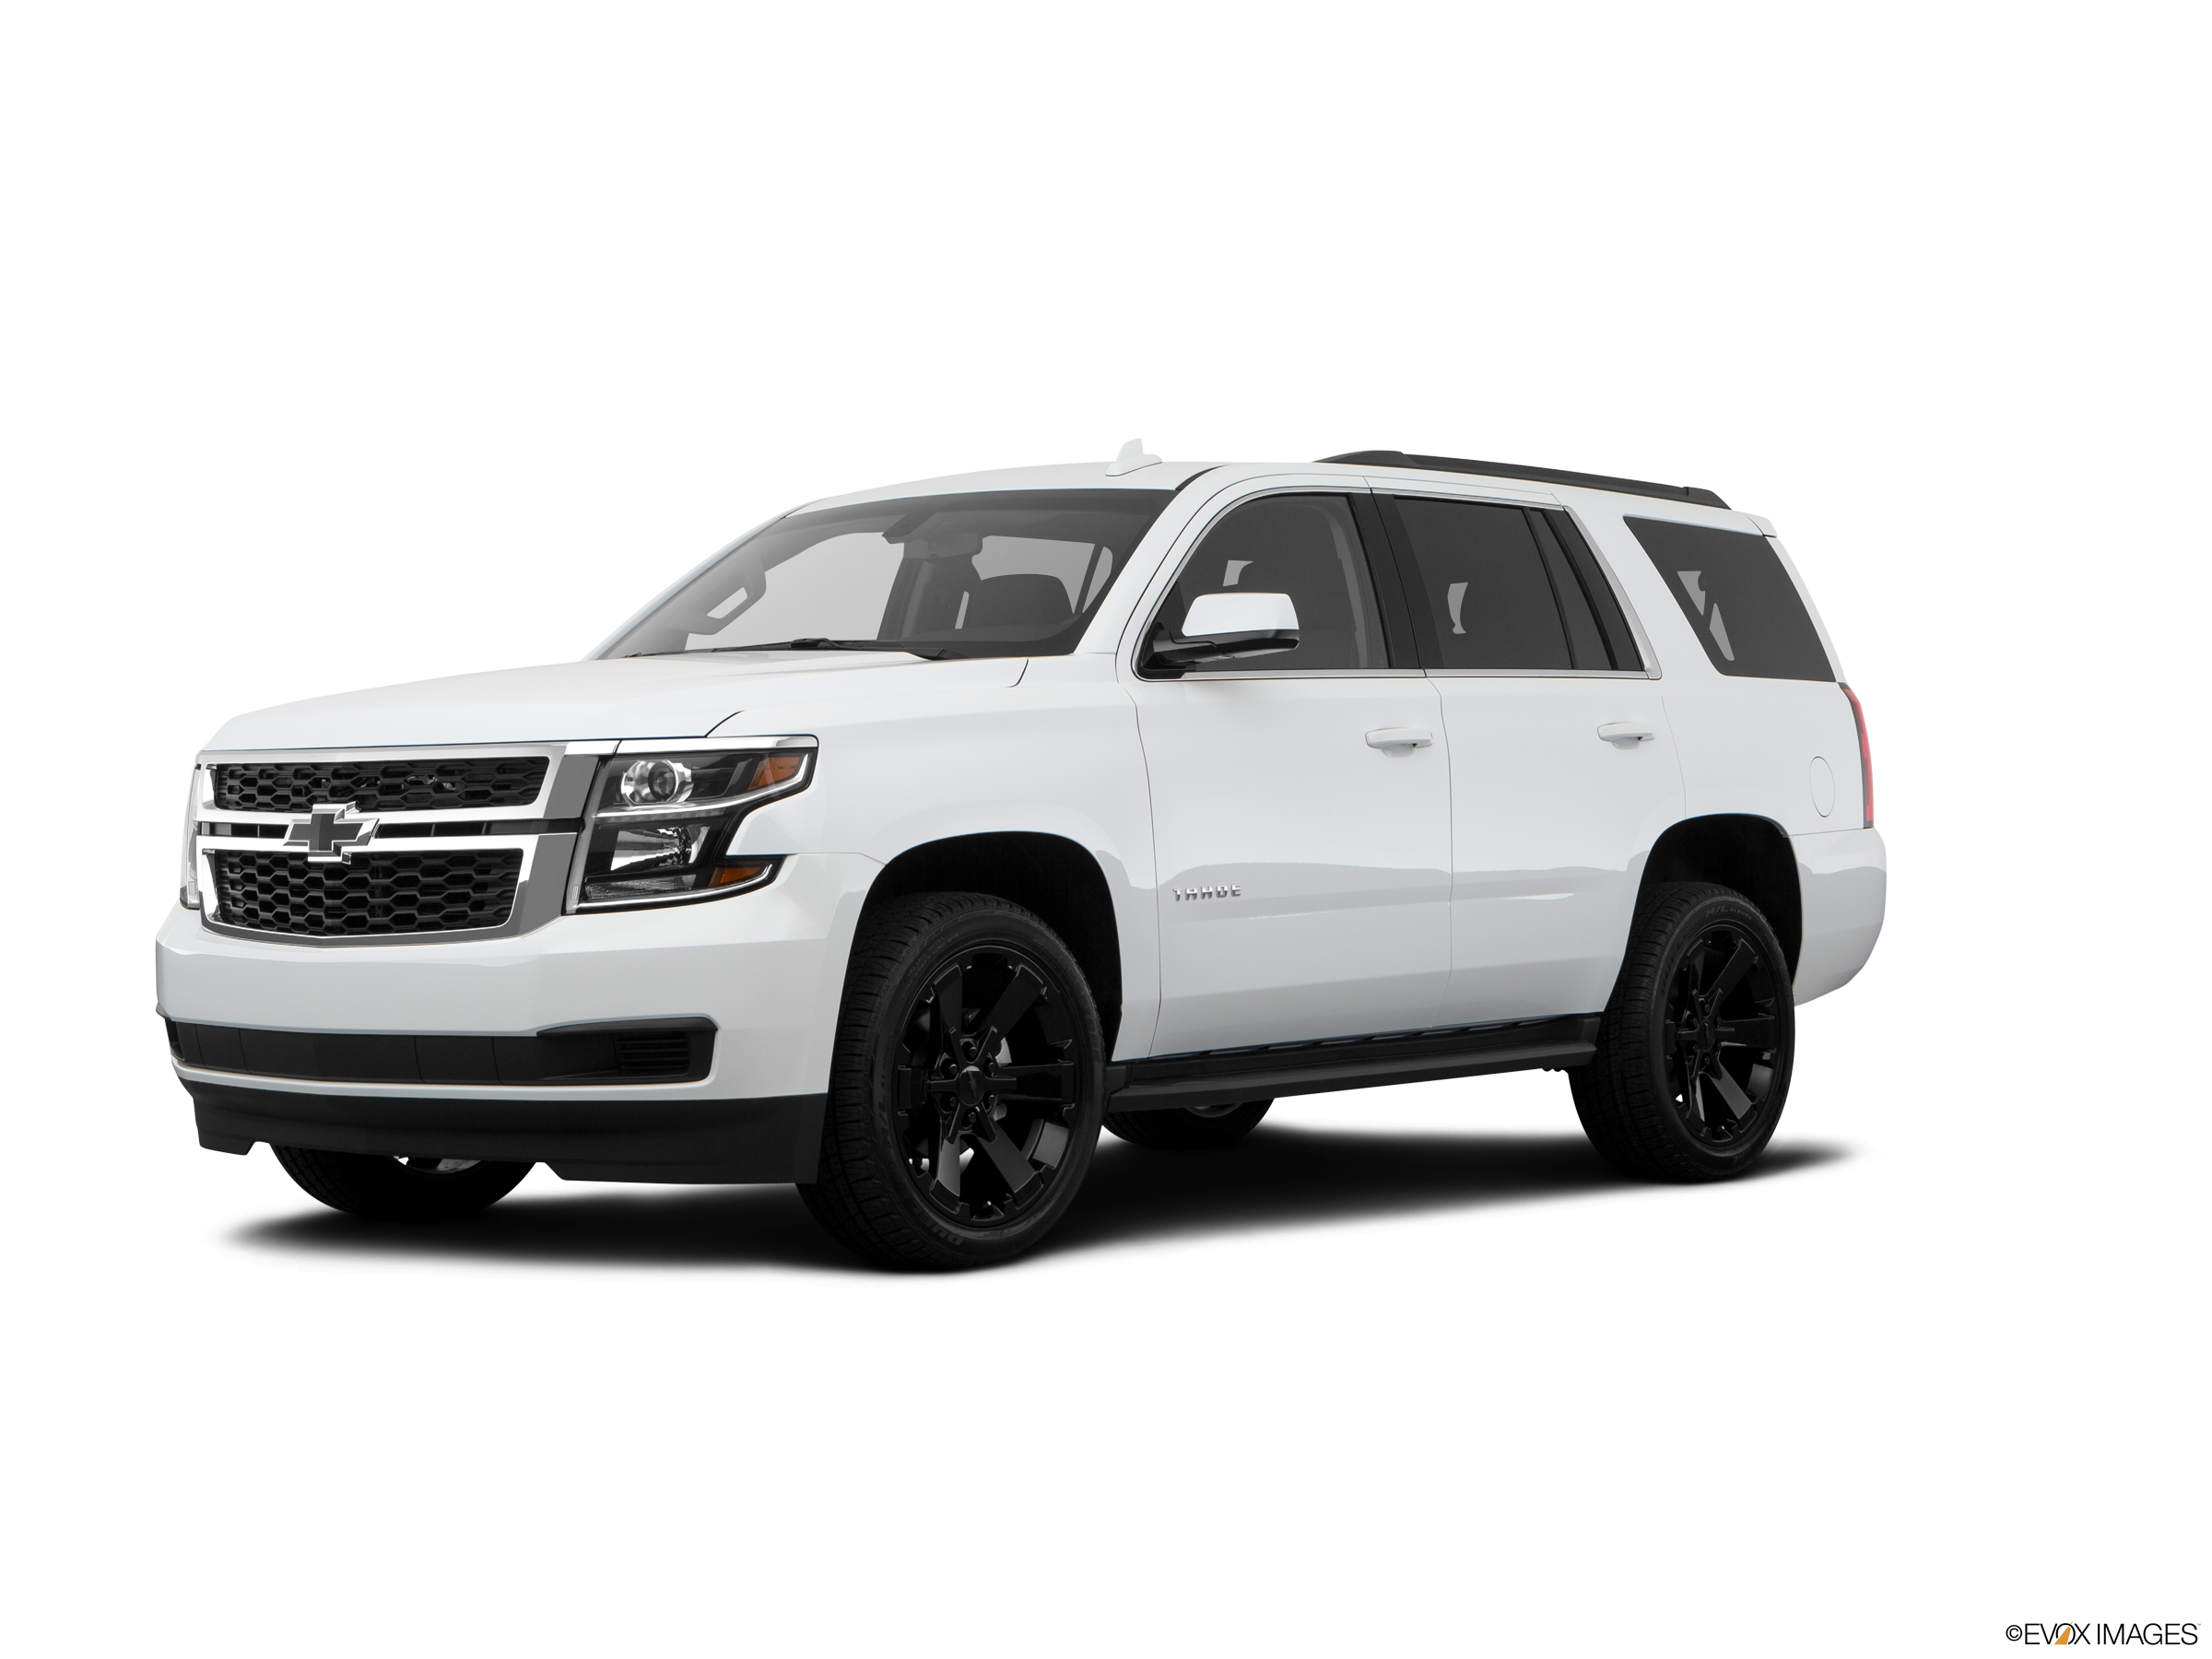 25 Best-Selling SUVs of 2018 - Chevrolet Tahoe